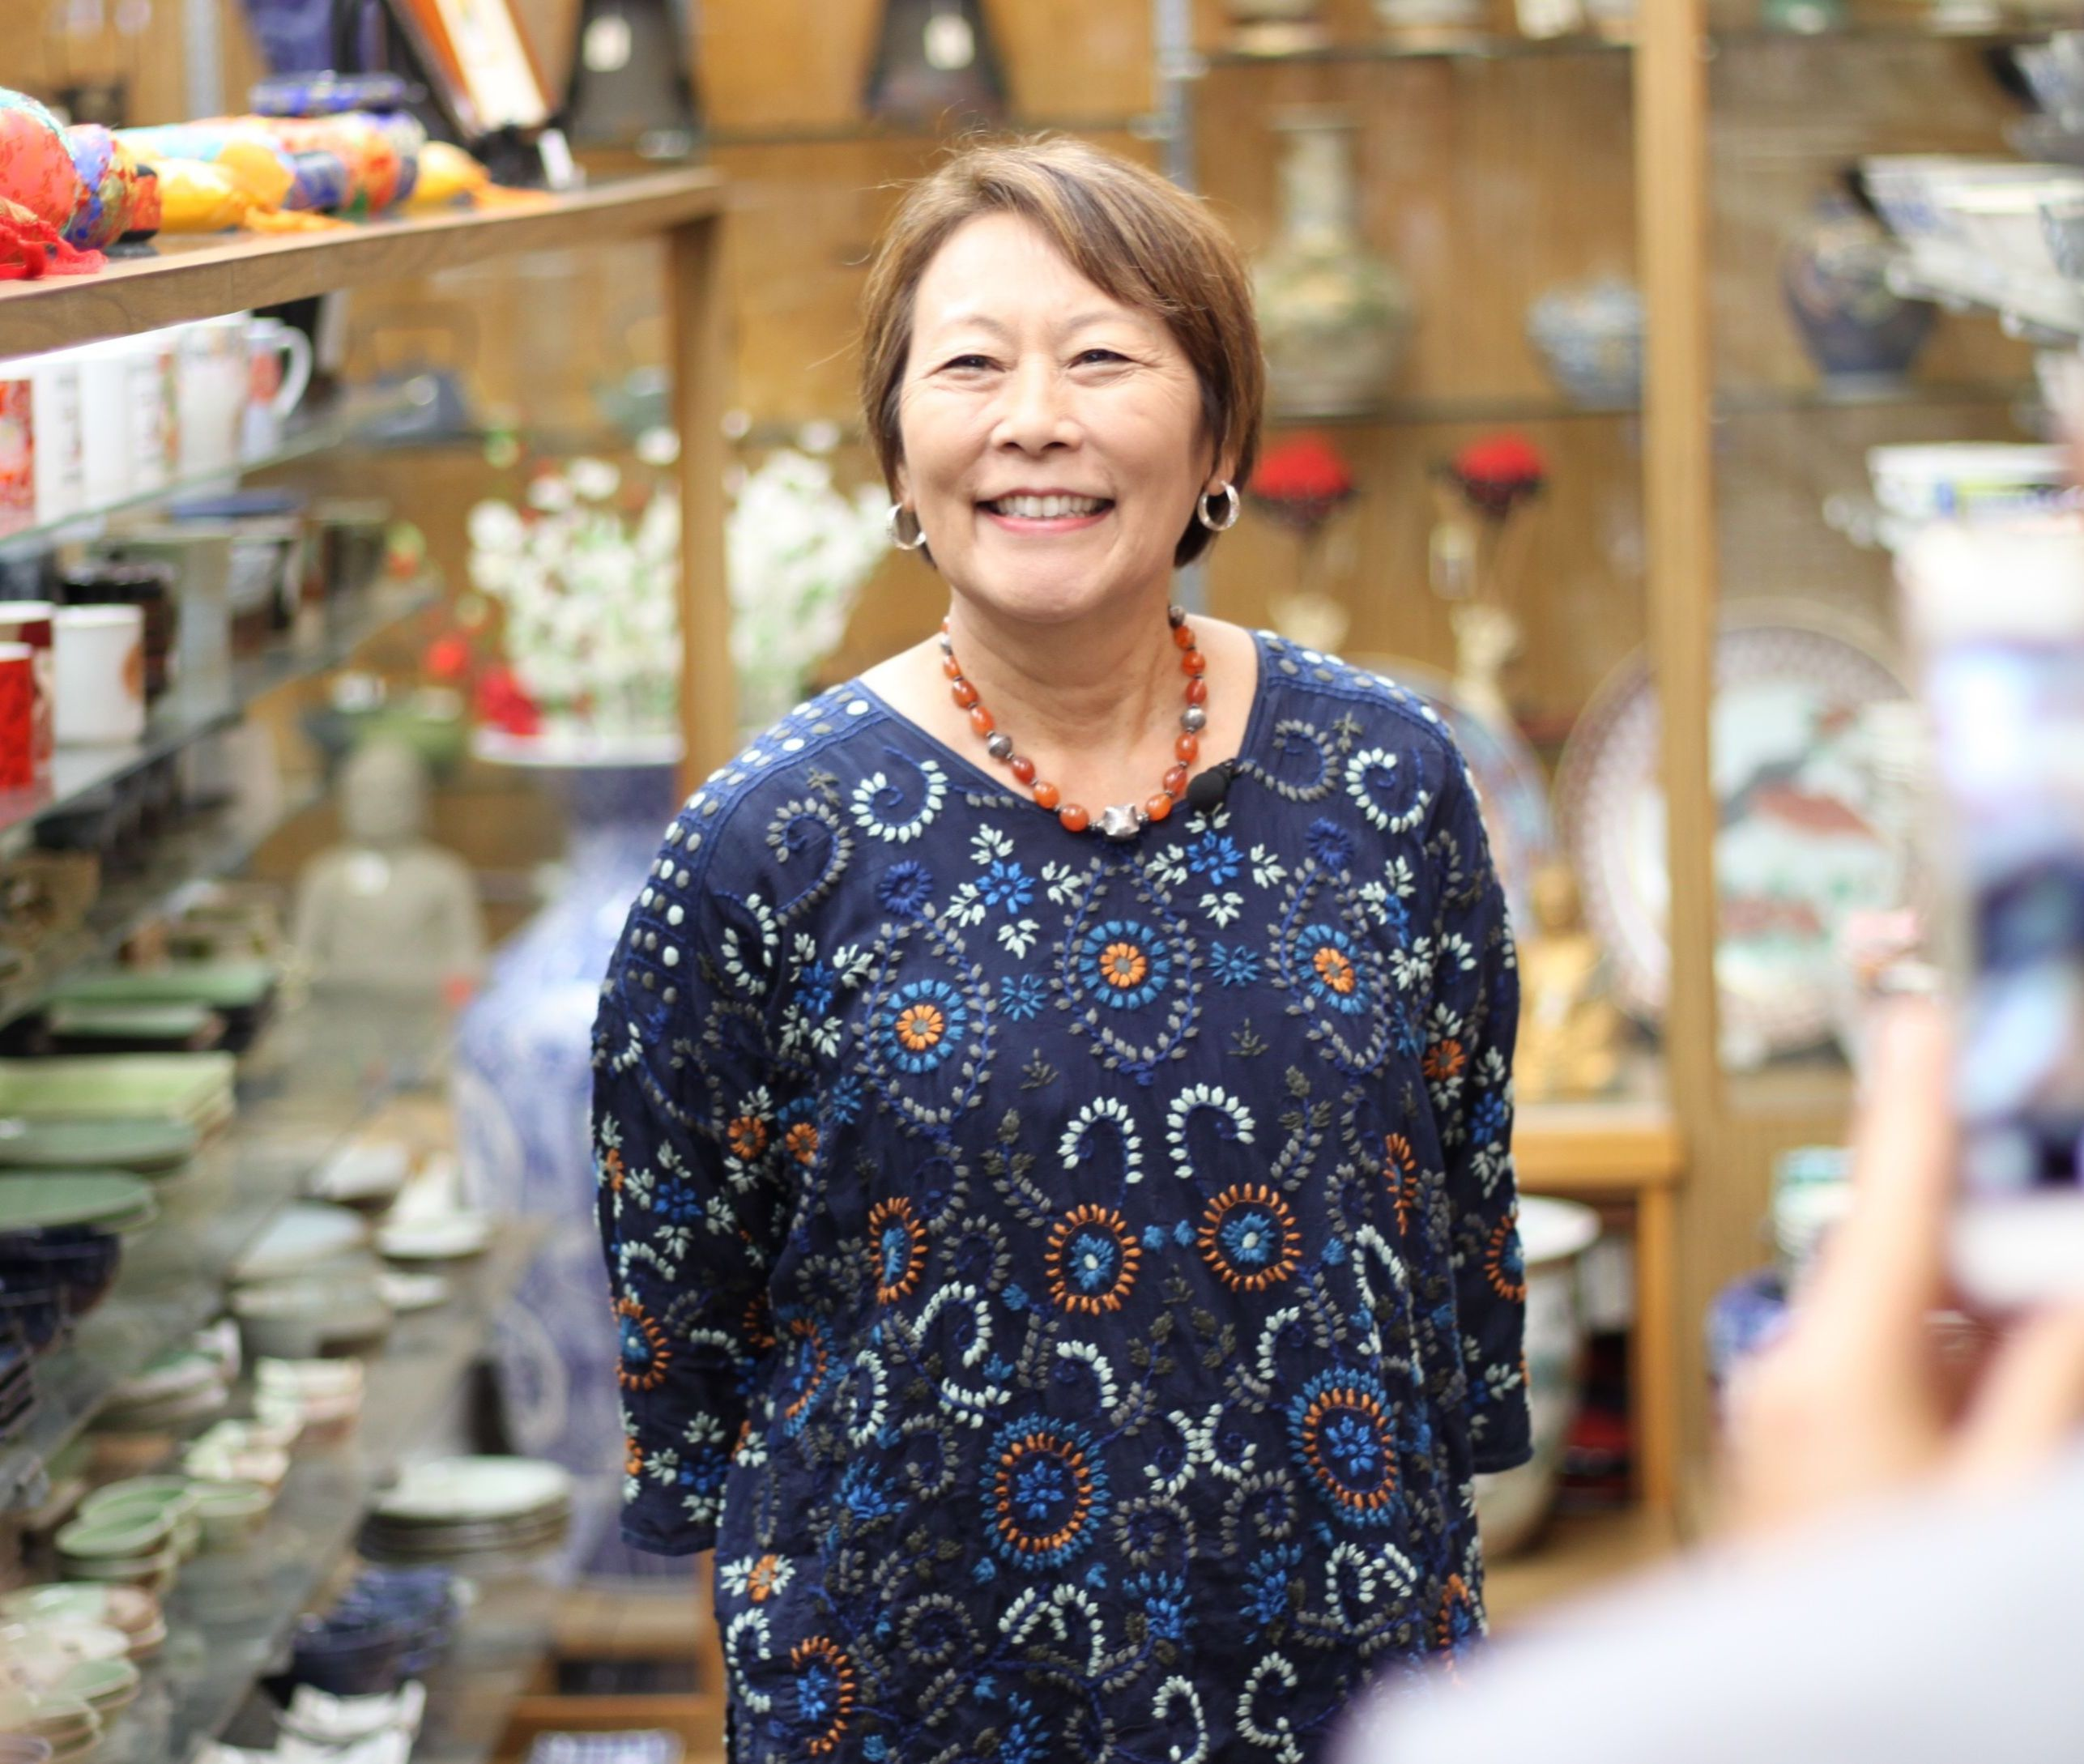 Irene Simonian, owner of Bunkado stands in her store